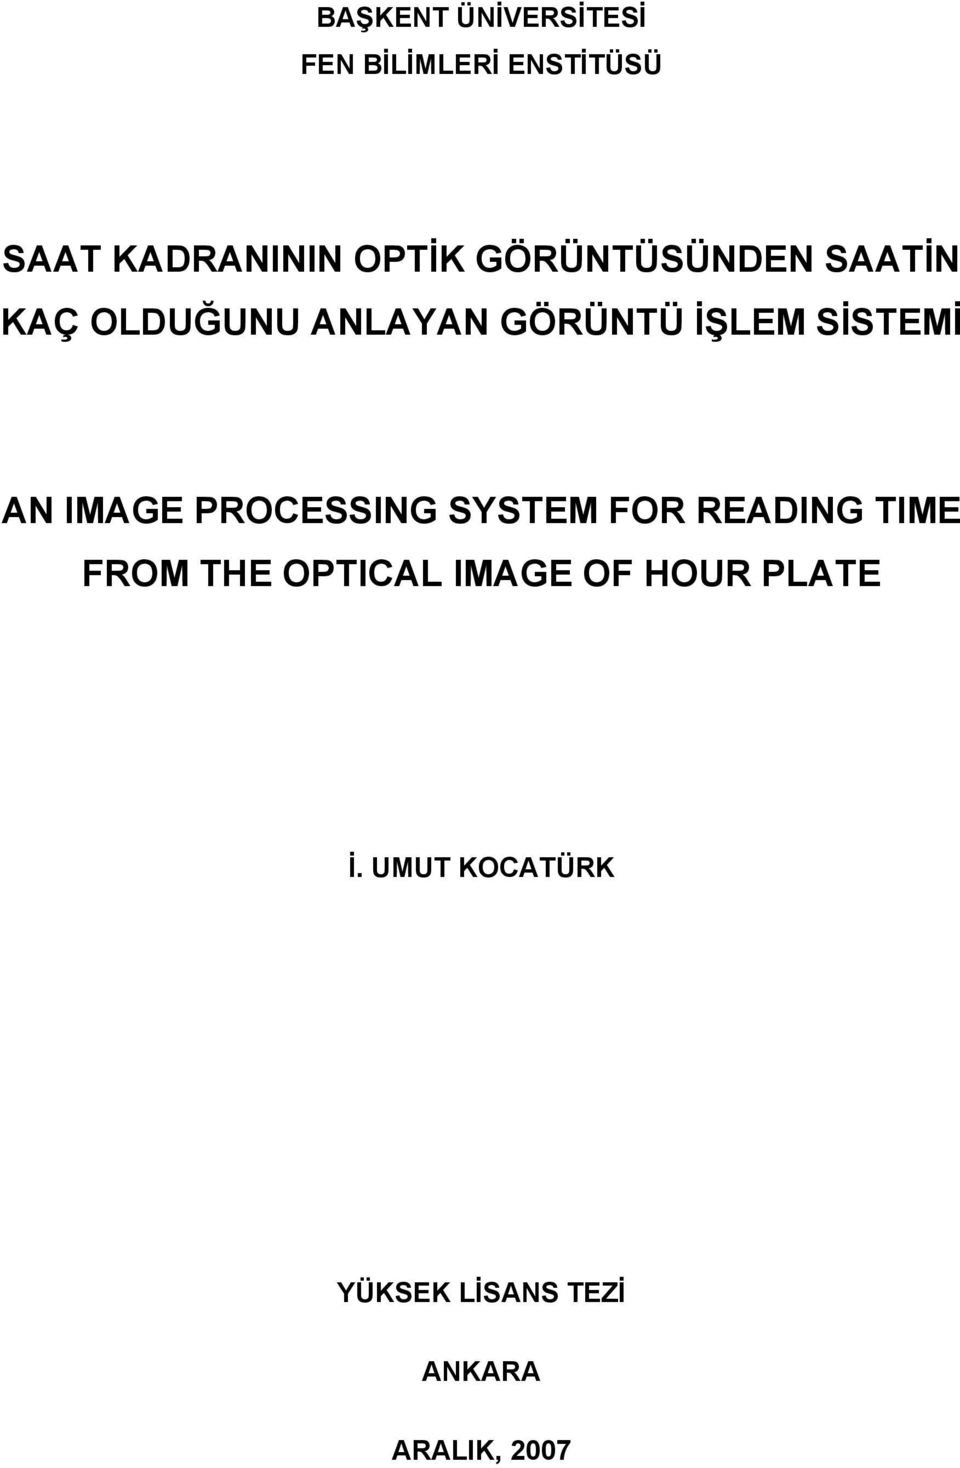 IMAGE PROCESSING SYSTEM FOR READING TIME FROM THE OPTICAL IMAGE OF